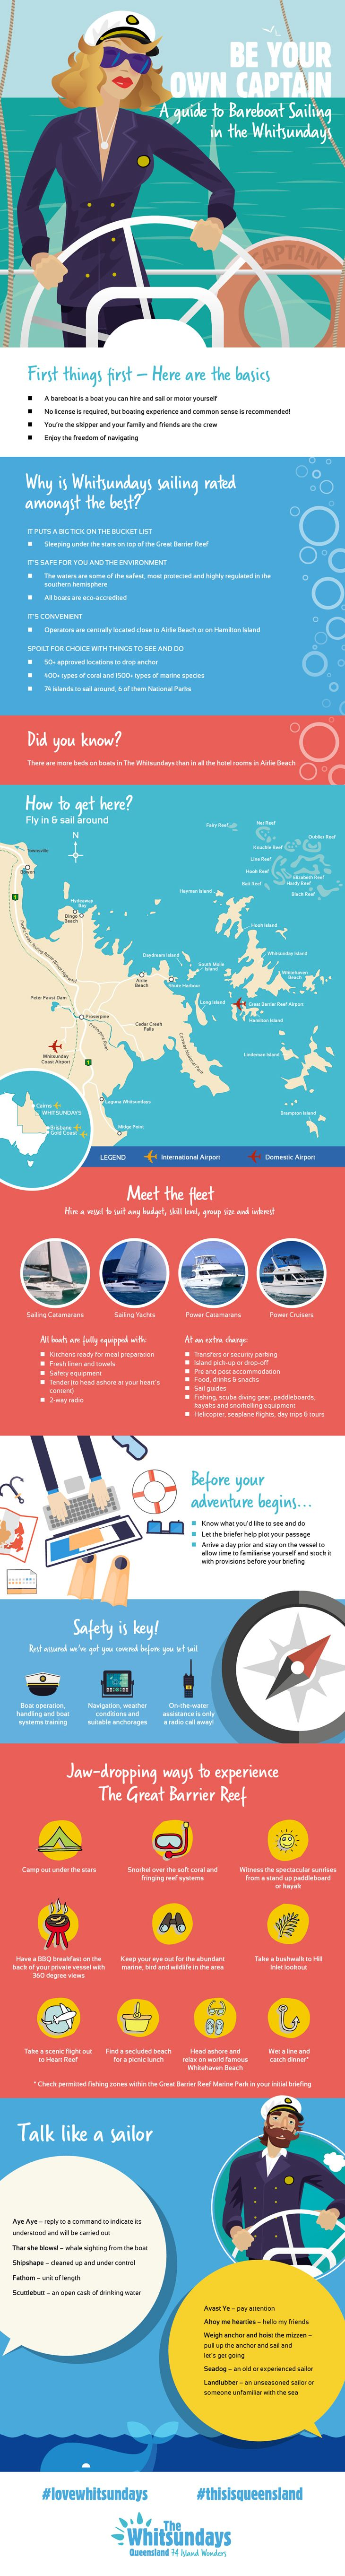 If sailing is on top of the 'must-do' list, The Whitsundays is a top spot for just that! Whether you're an experienced sailor or it's your first time at sea, check out our guide to Bareboat Sailing in the Whitsundays for some top tips!